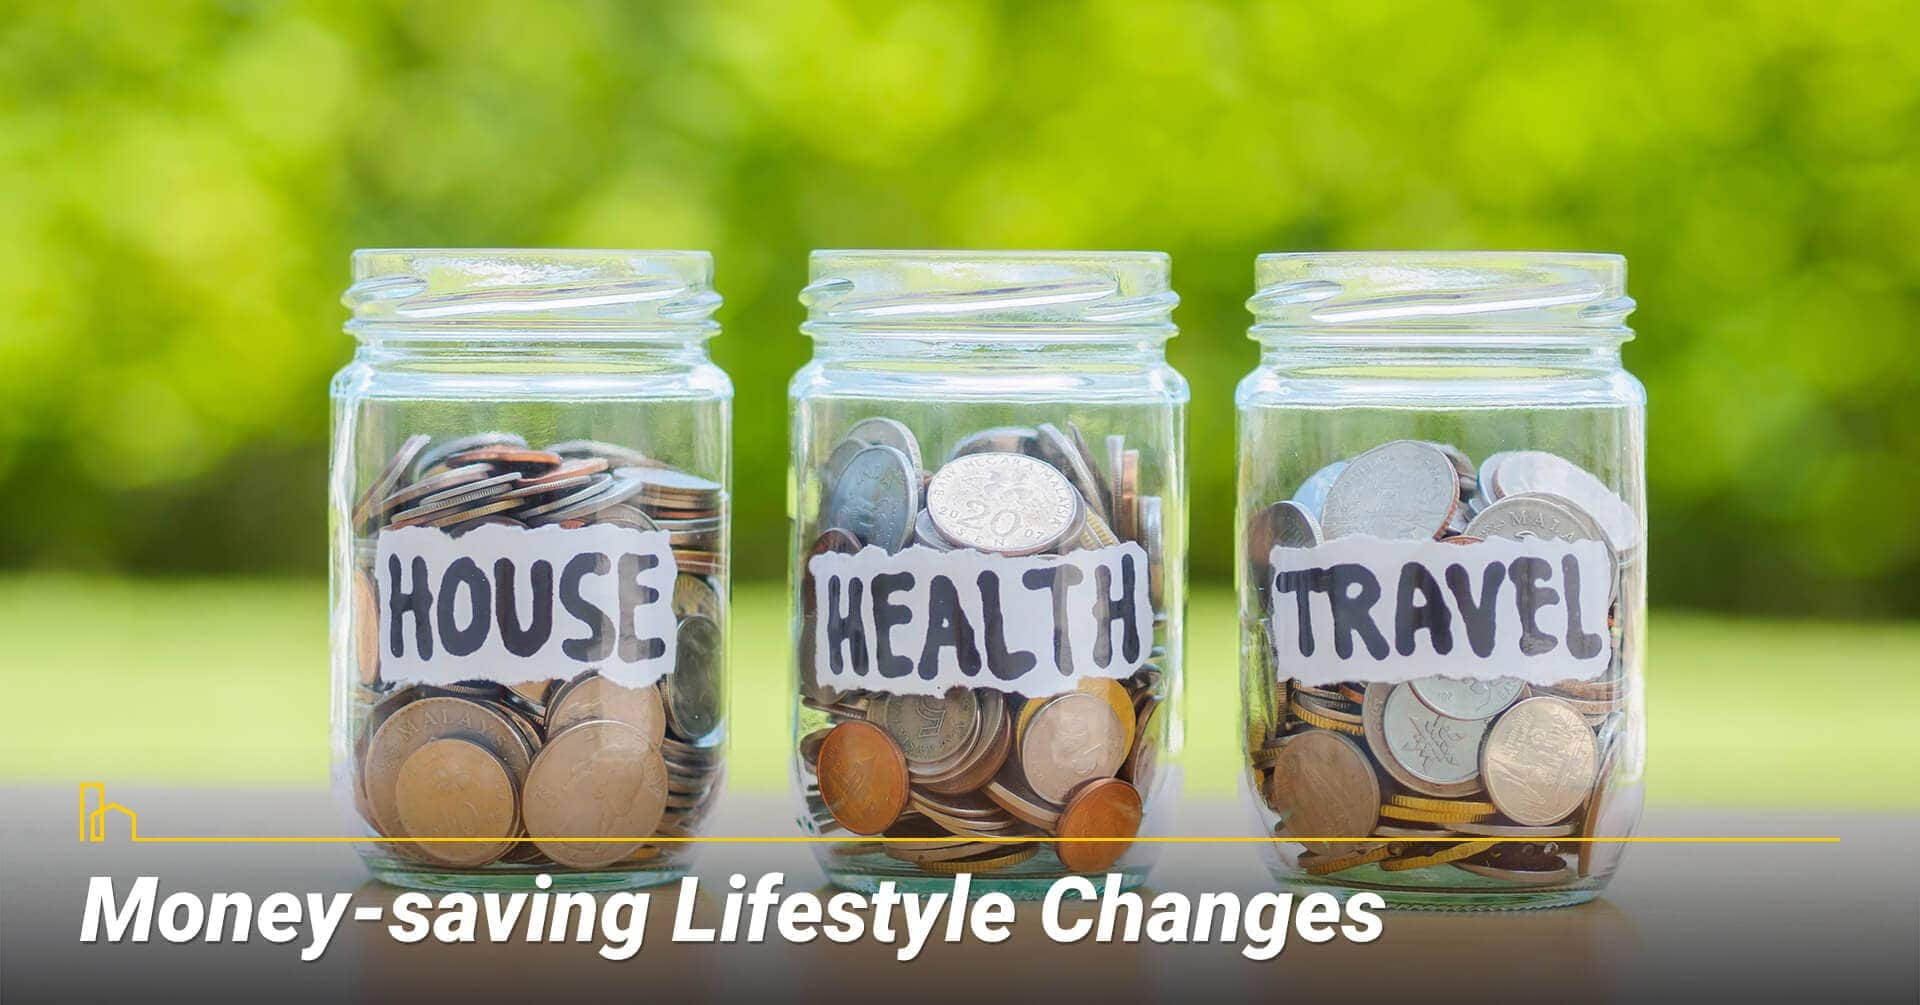 Money-saving Lifestyle Changes